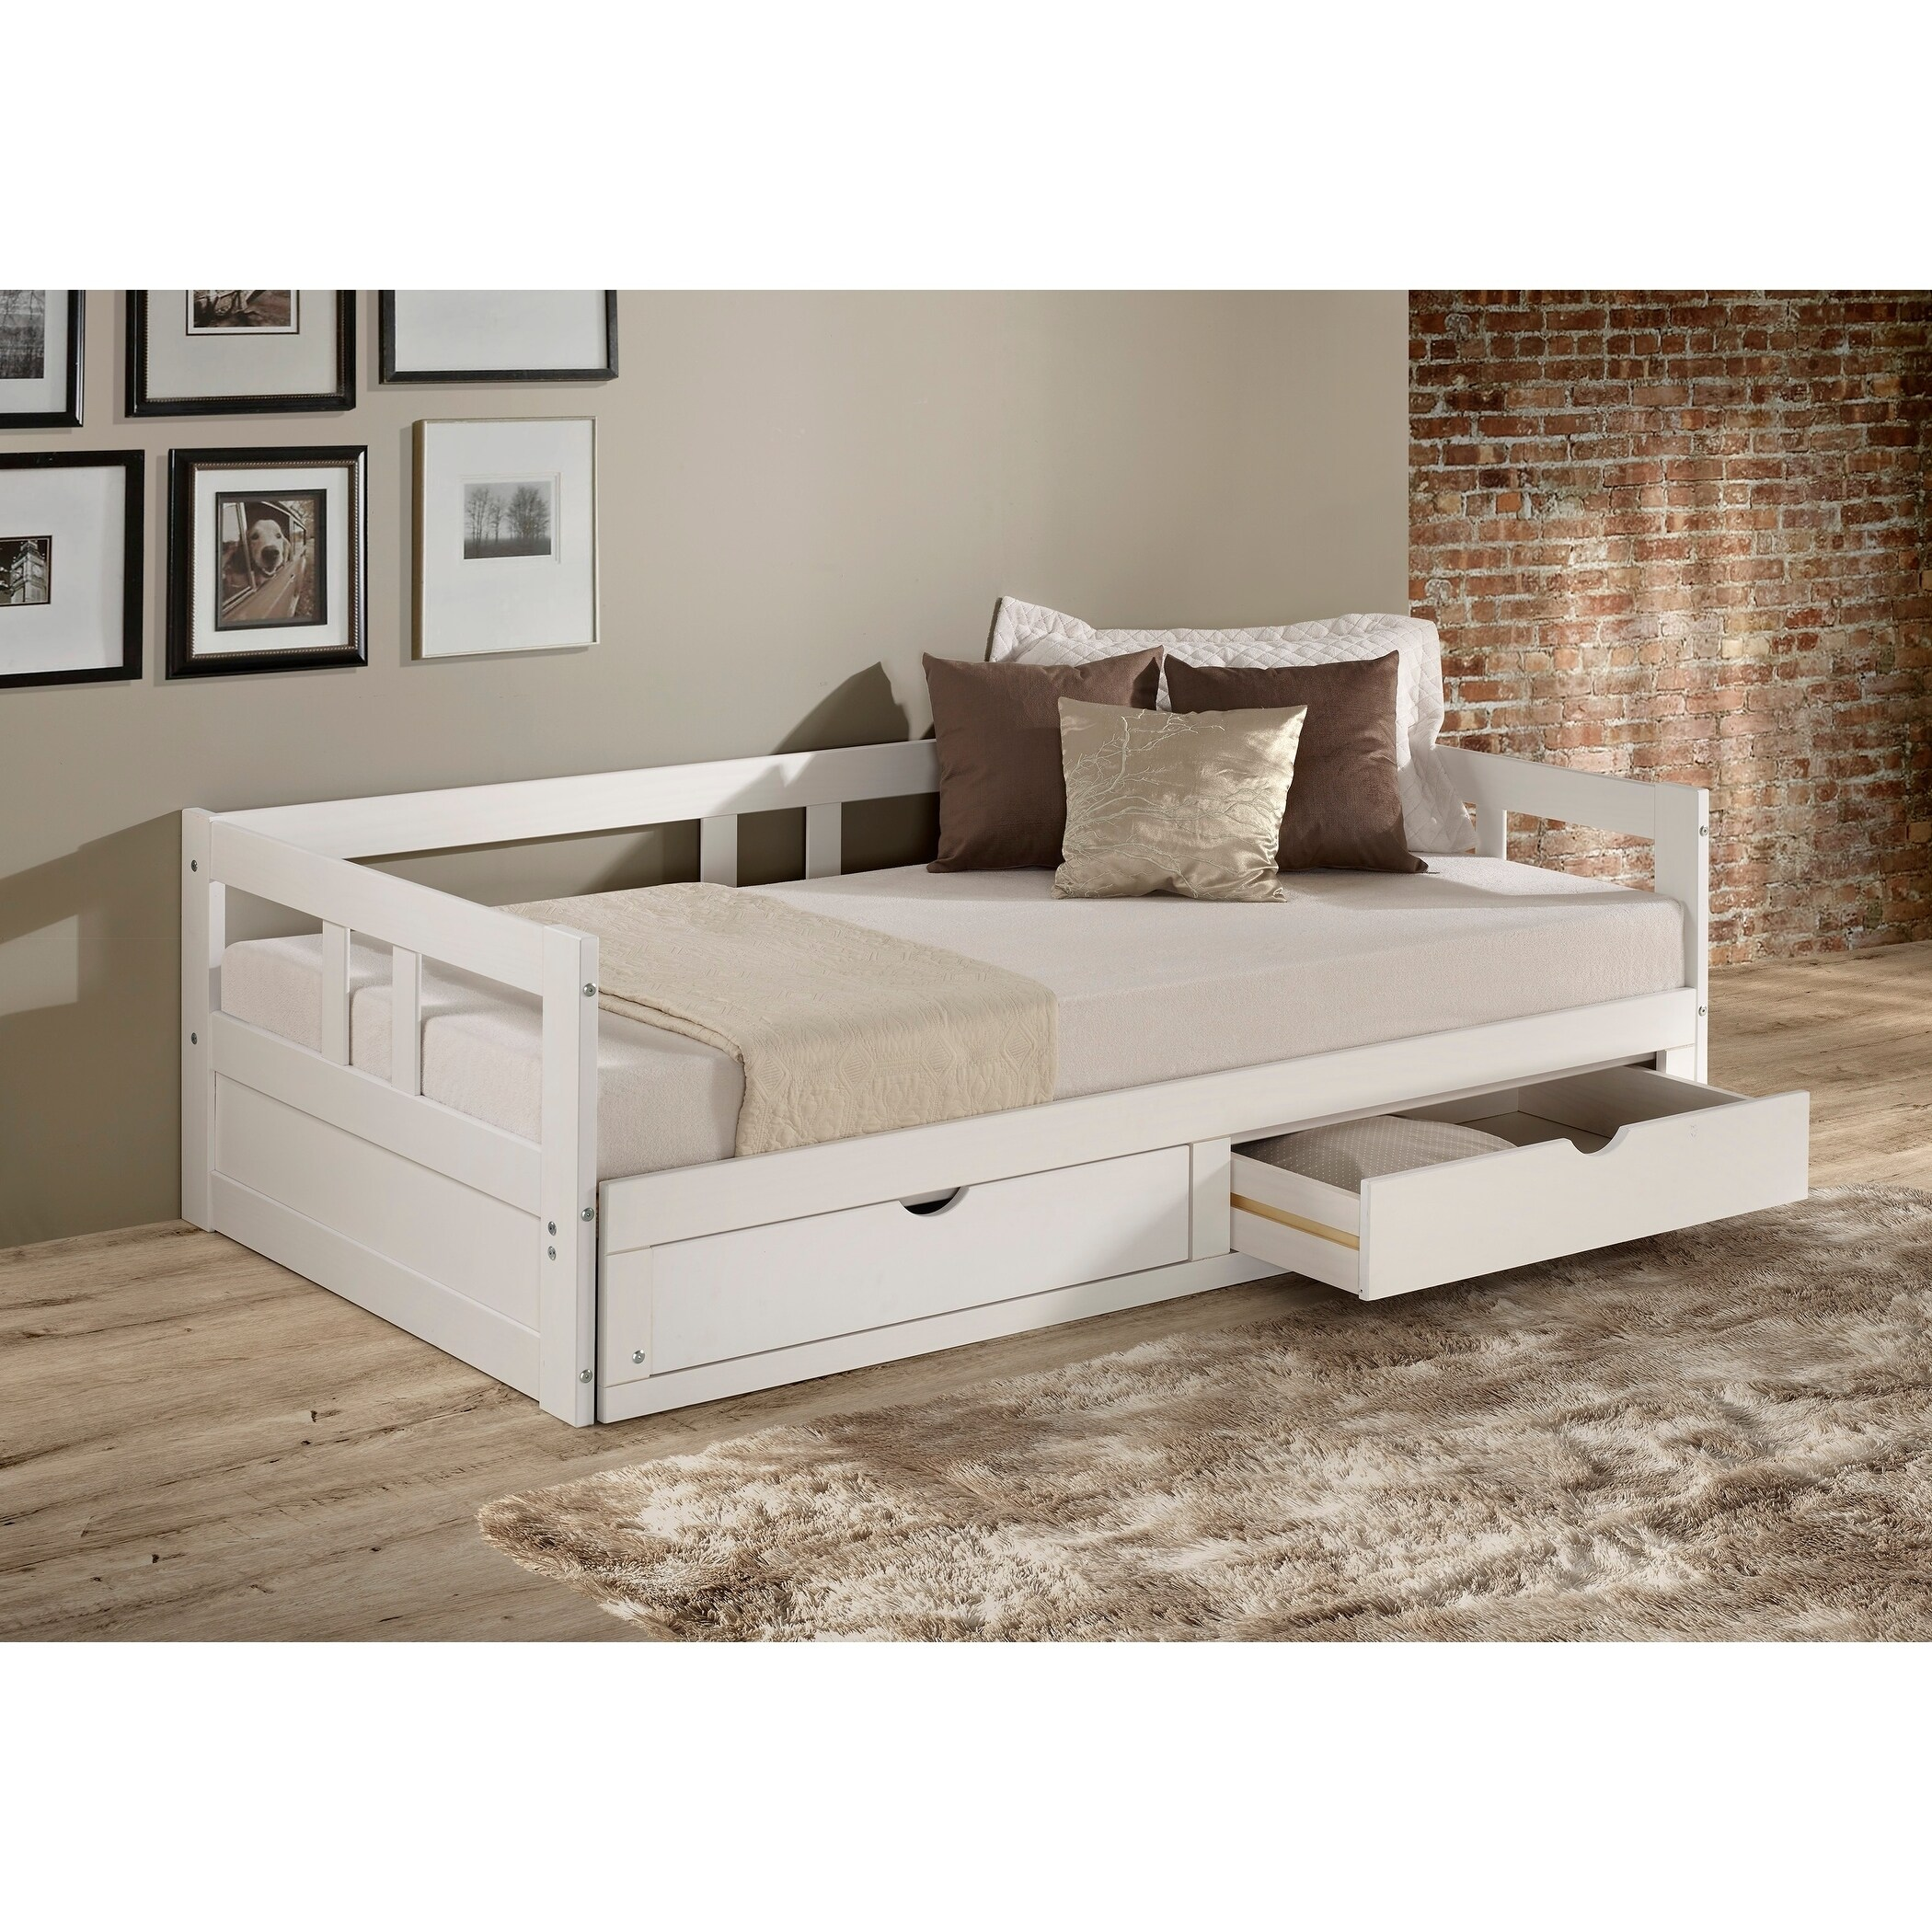 Melody Twin To King Trundle Daybed With Storage Drawers, White